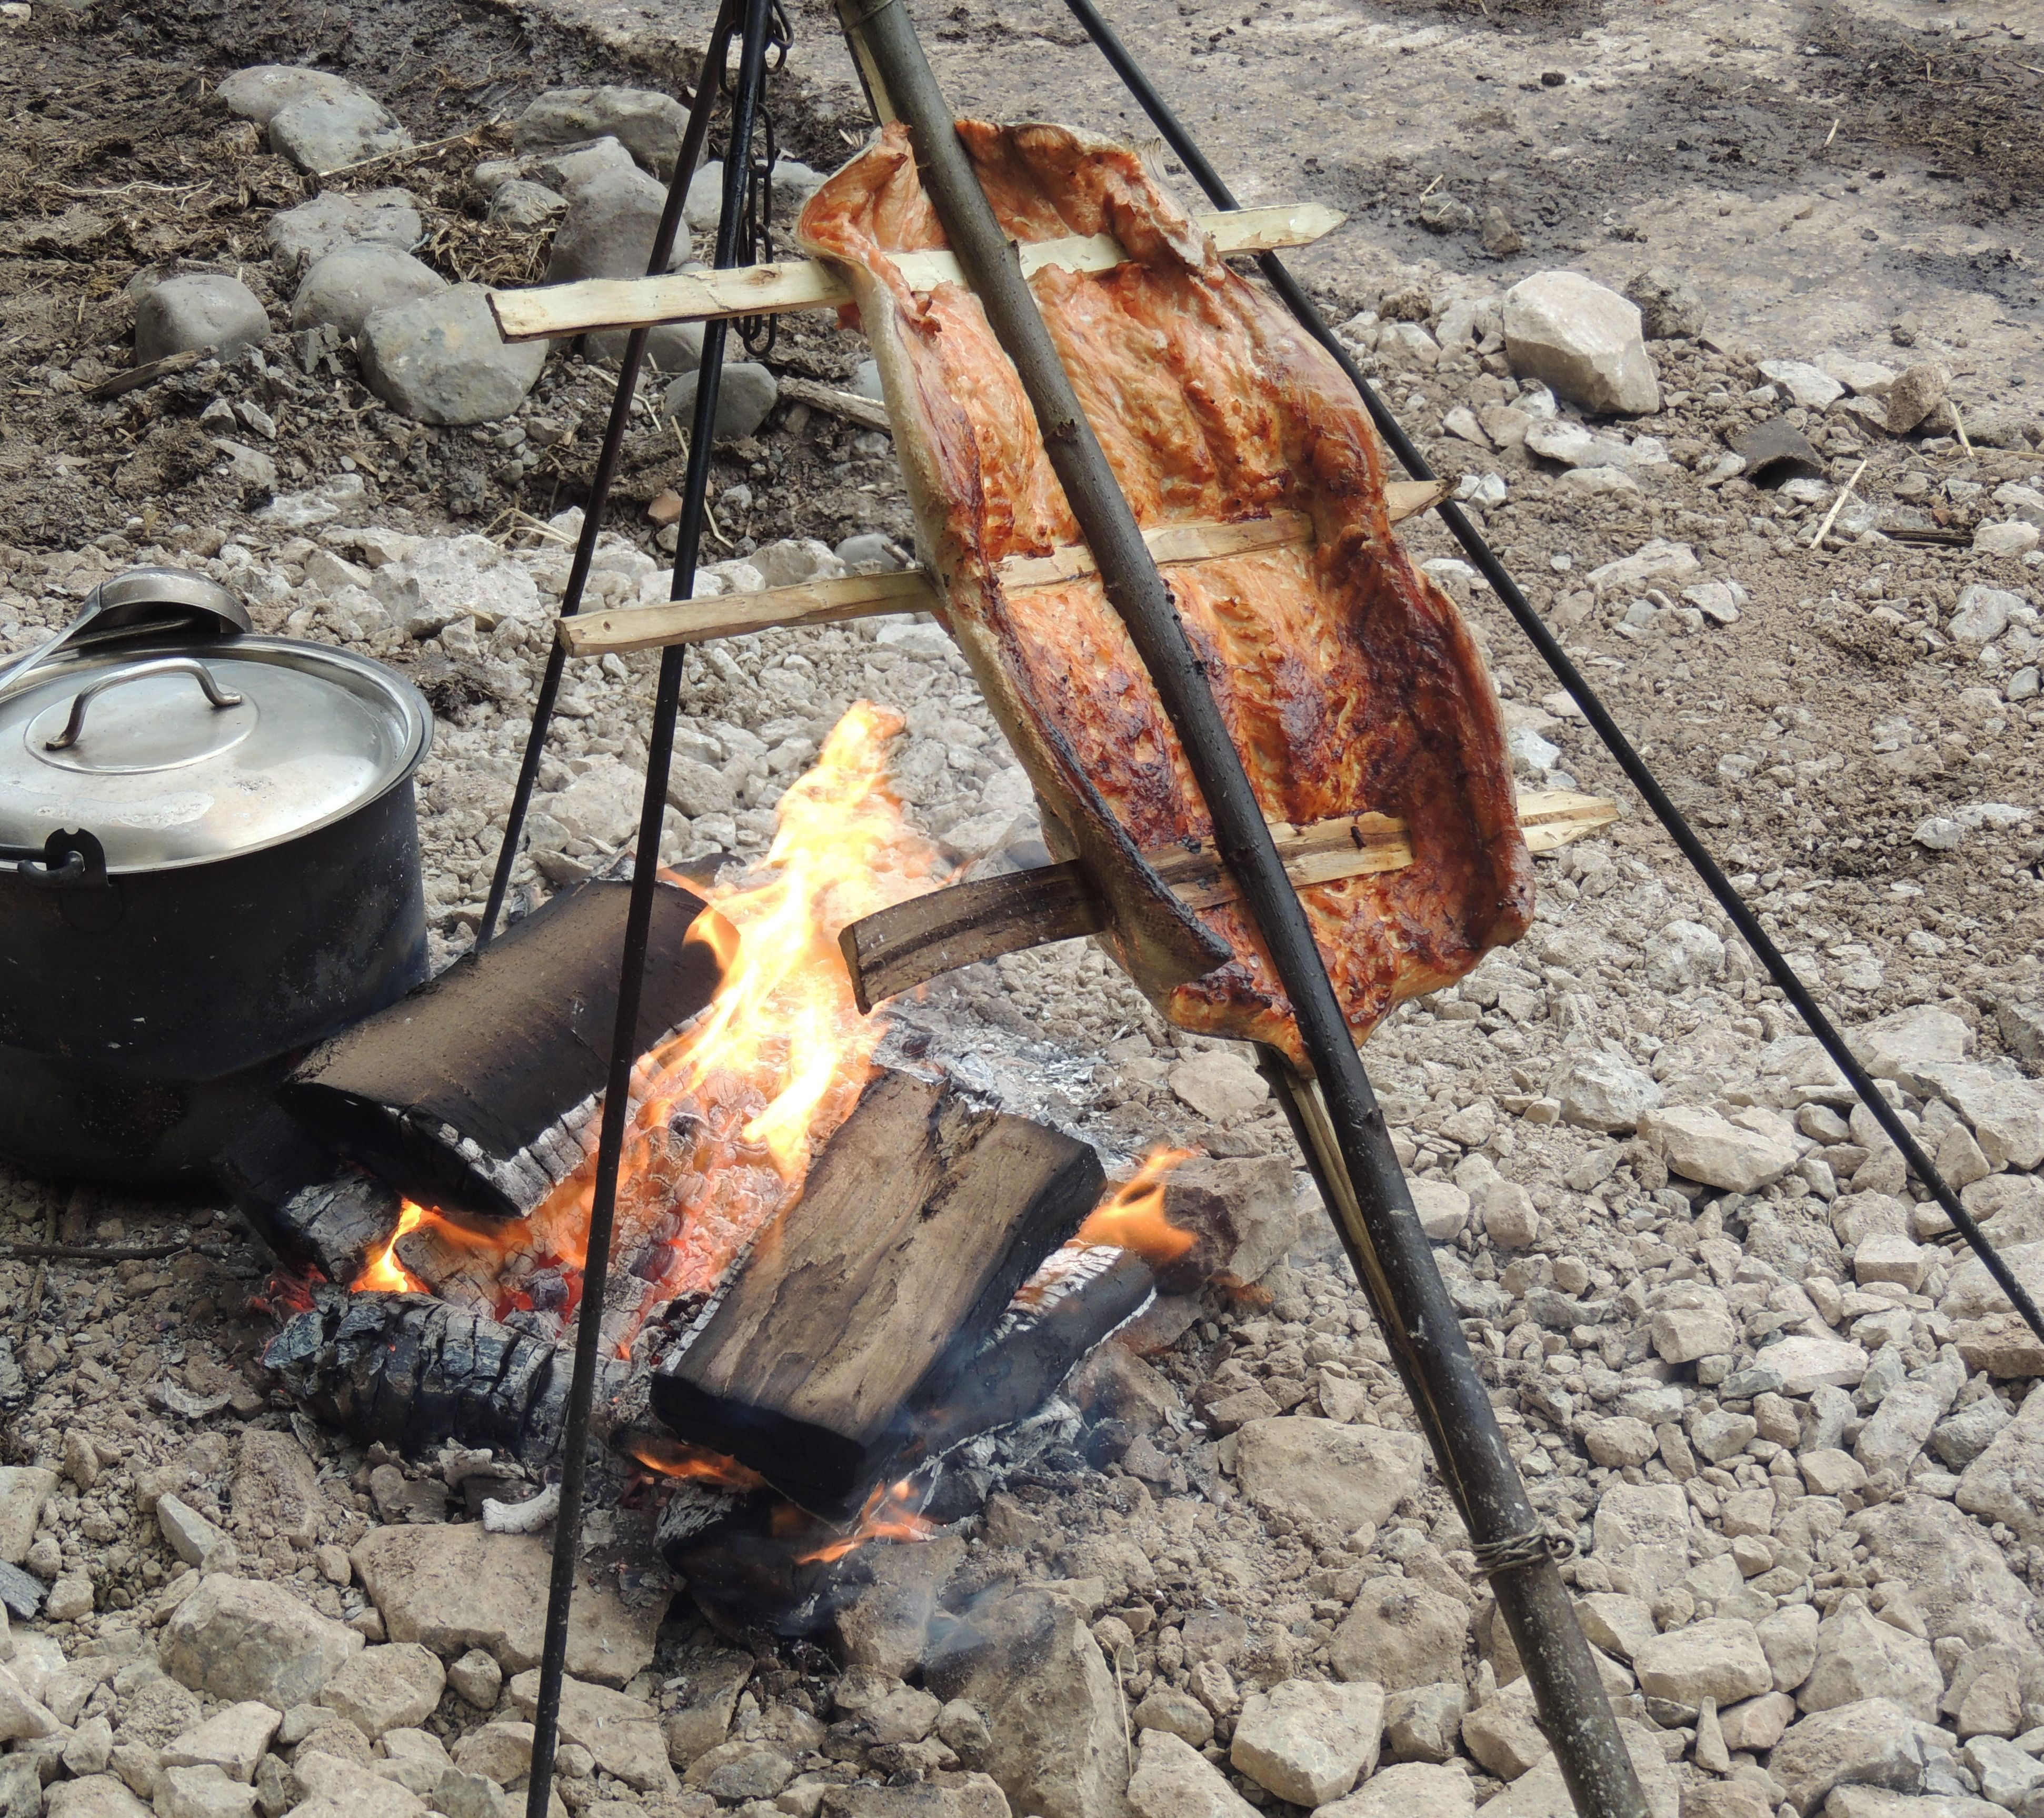 17 Best Images About Camping Cooking Equipment On: On One Of Our Bushcraft Days At Humblescough Farm Mike